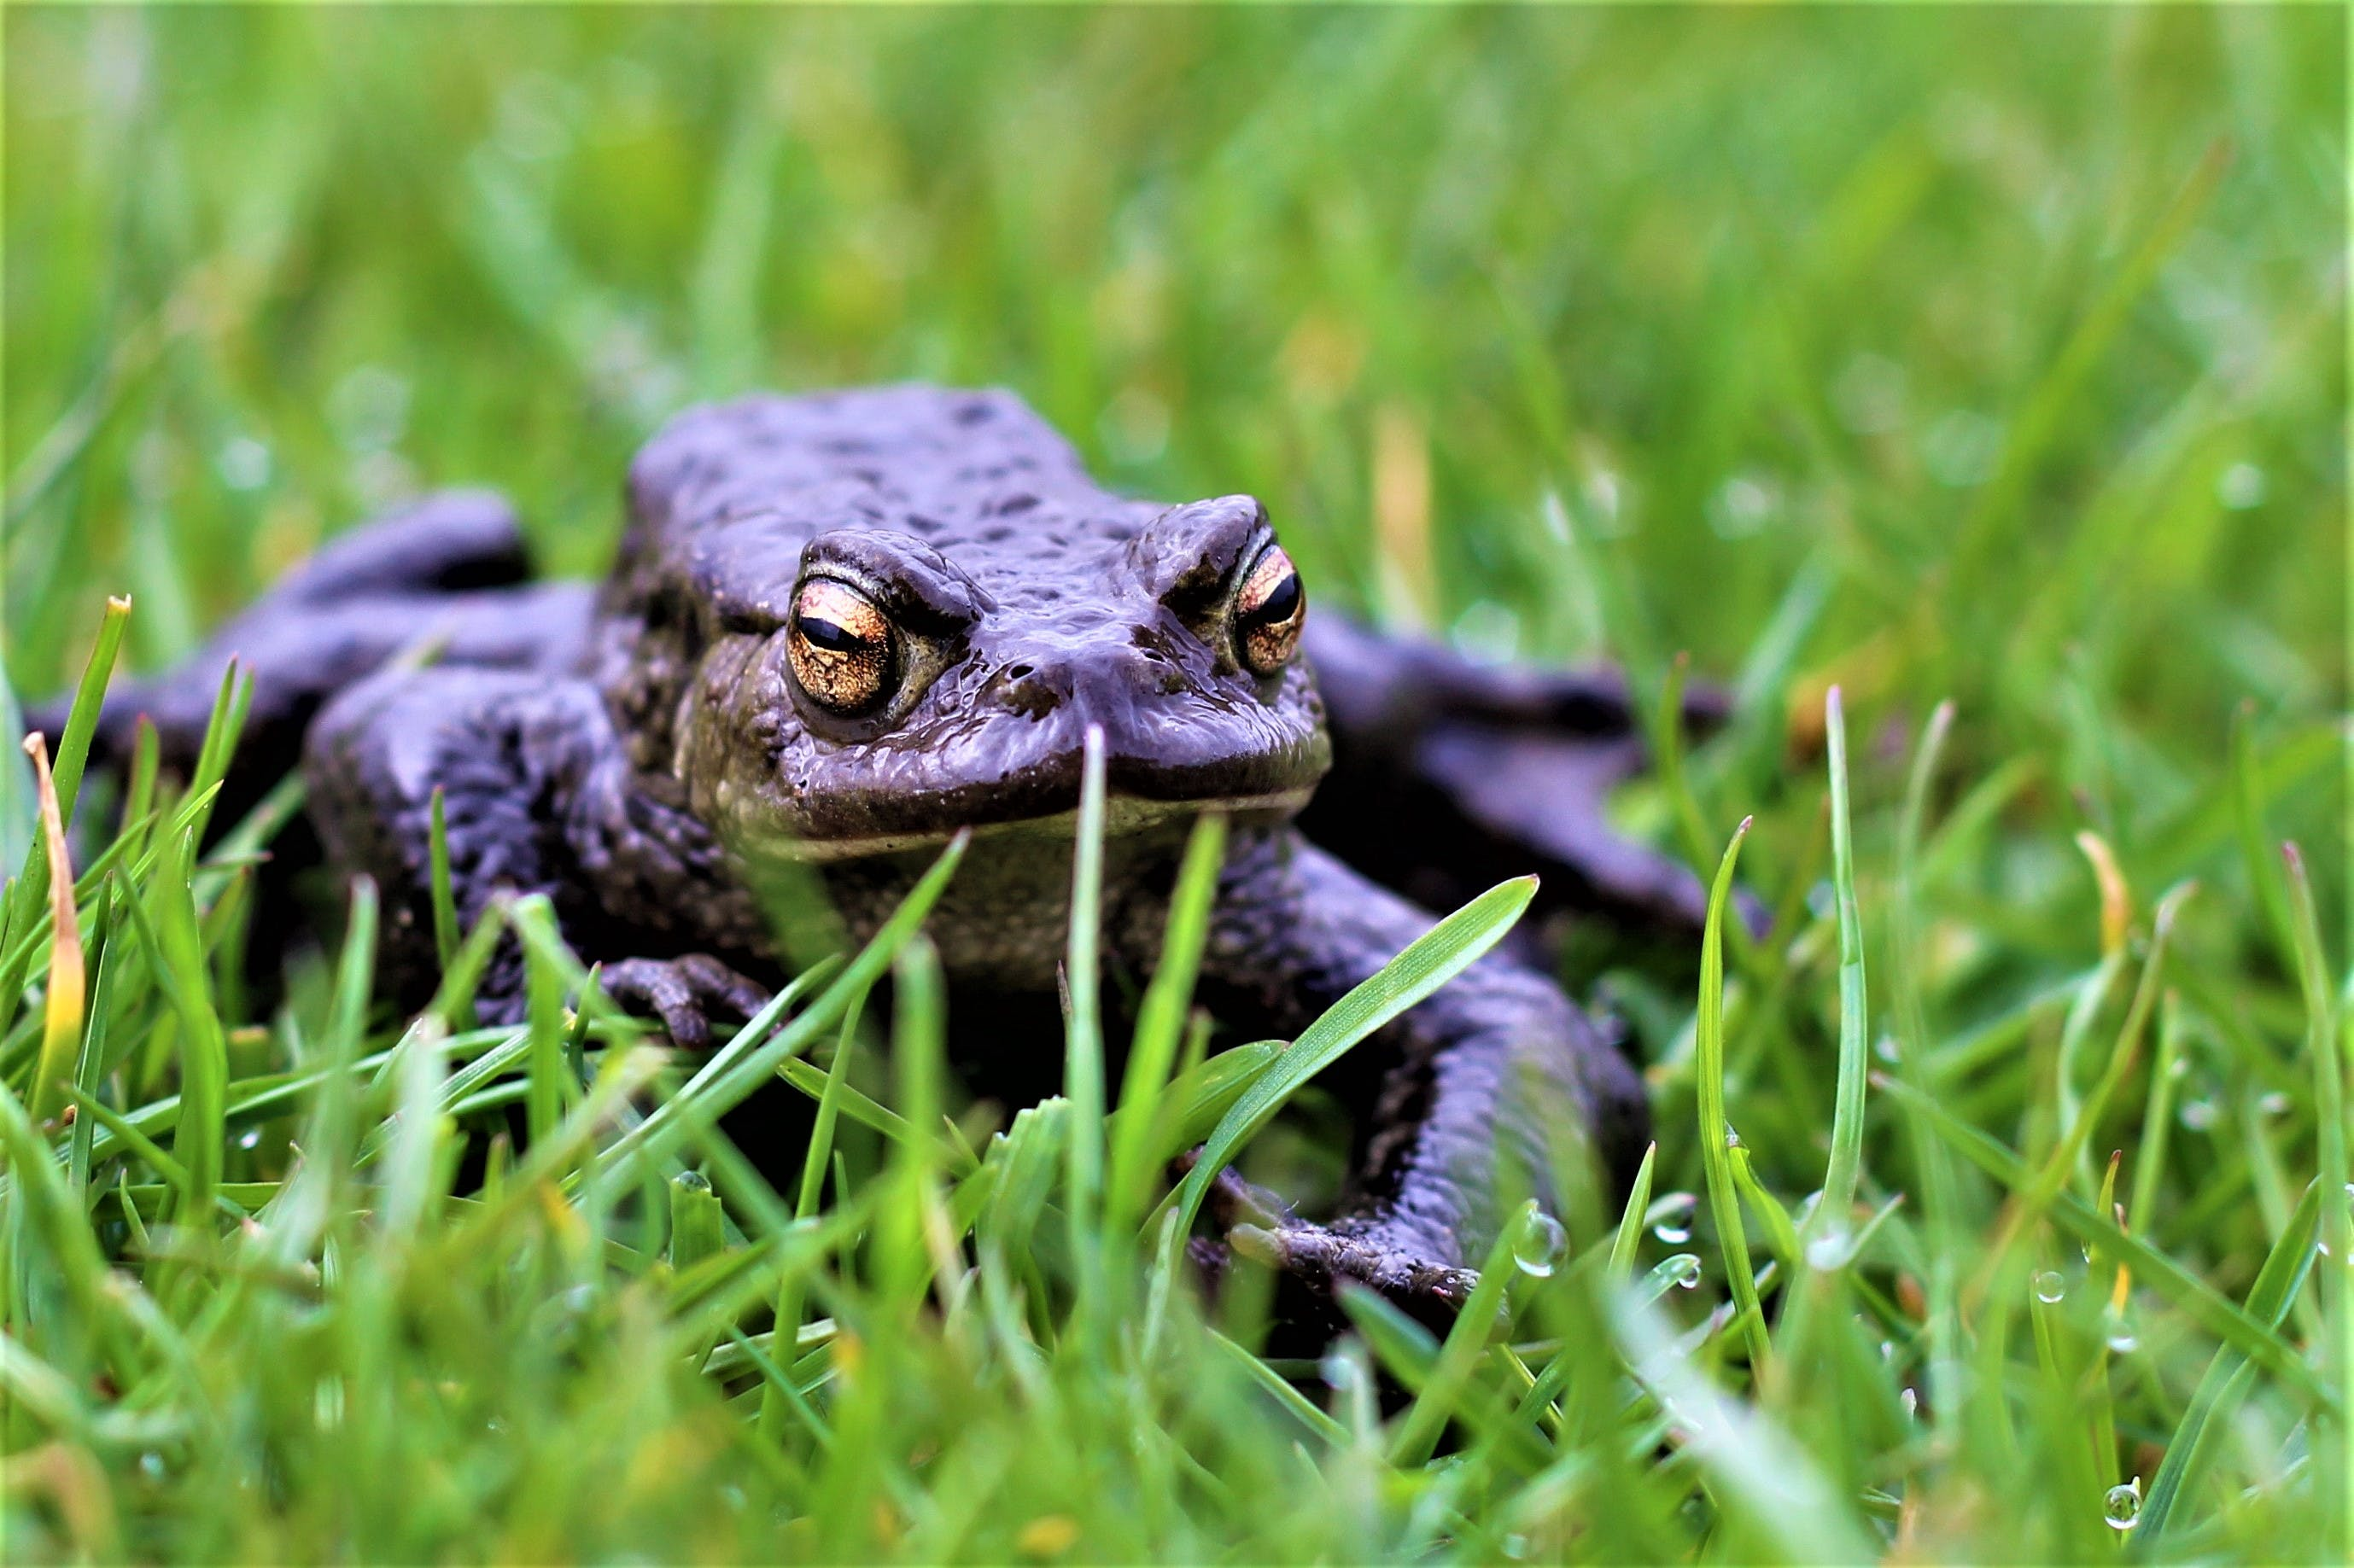 Free stock photo of amphibian, animal, animal lover, beauty in nature